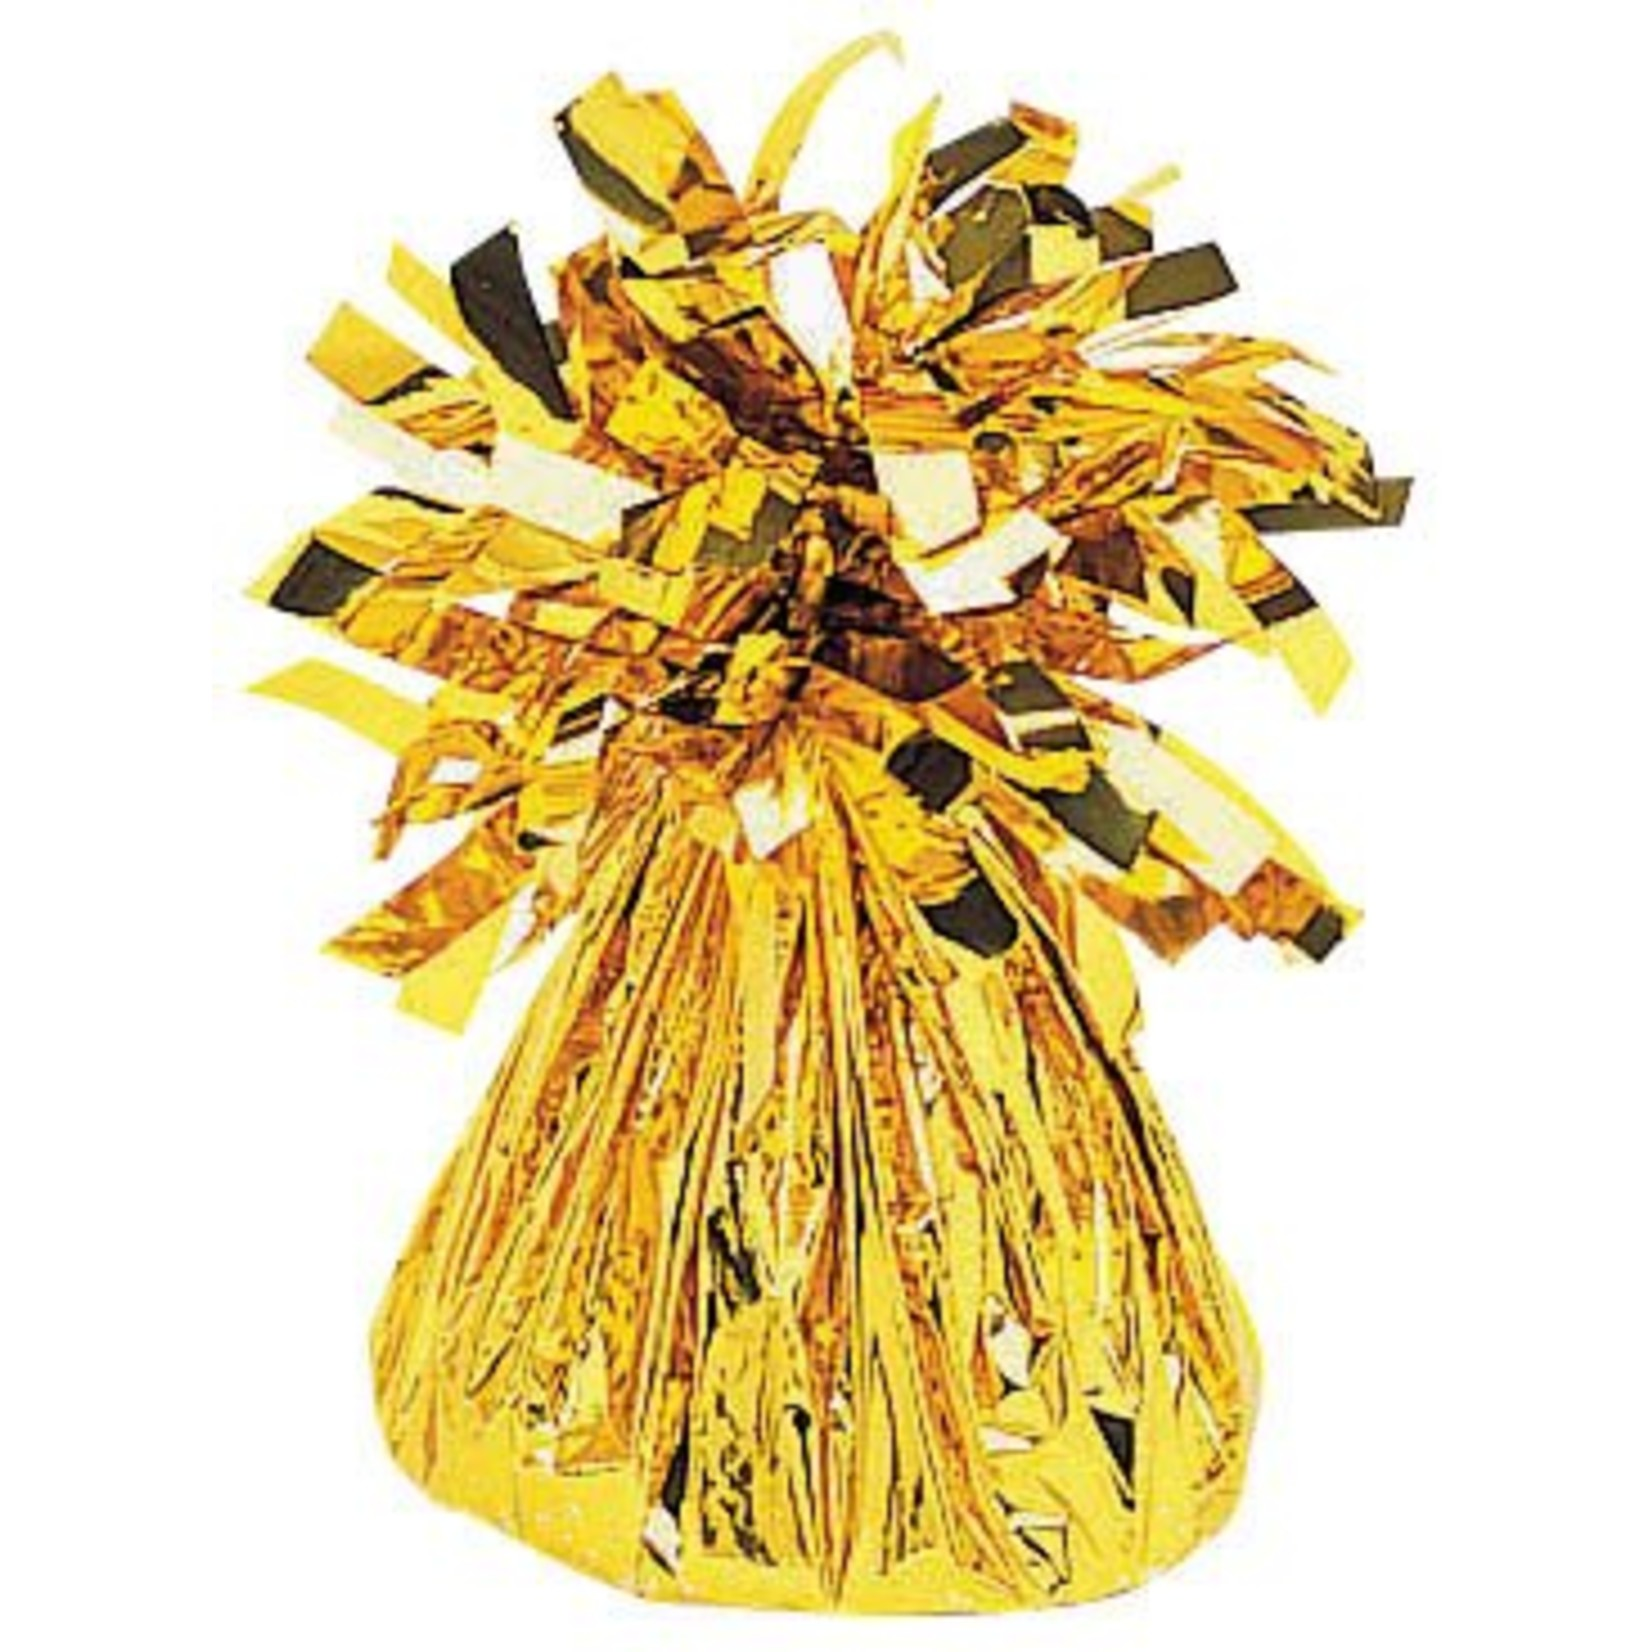 Balloon Weight-Small Foil-Gold-6oz